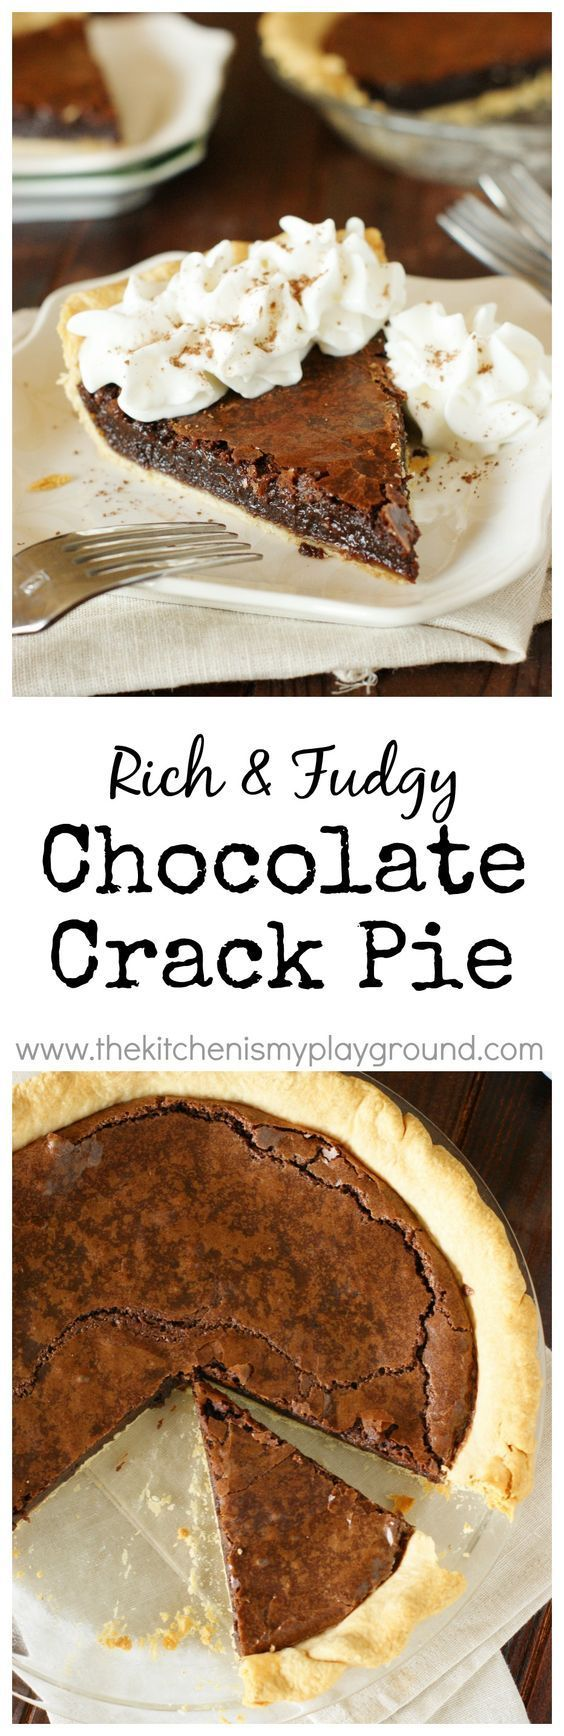 Chocolate Crack Pie ~ amazingly-rich-and-fudgy, addictively delicious, gooey brownie ... in a crust! http://www.thekitchenismyplayground.com